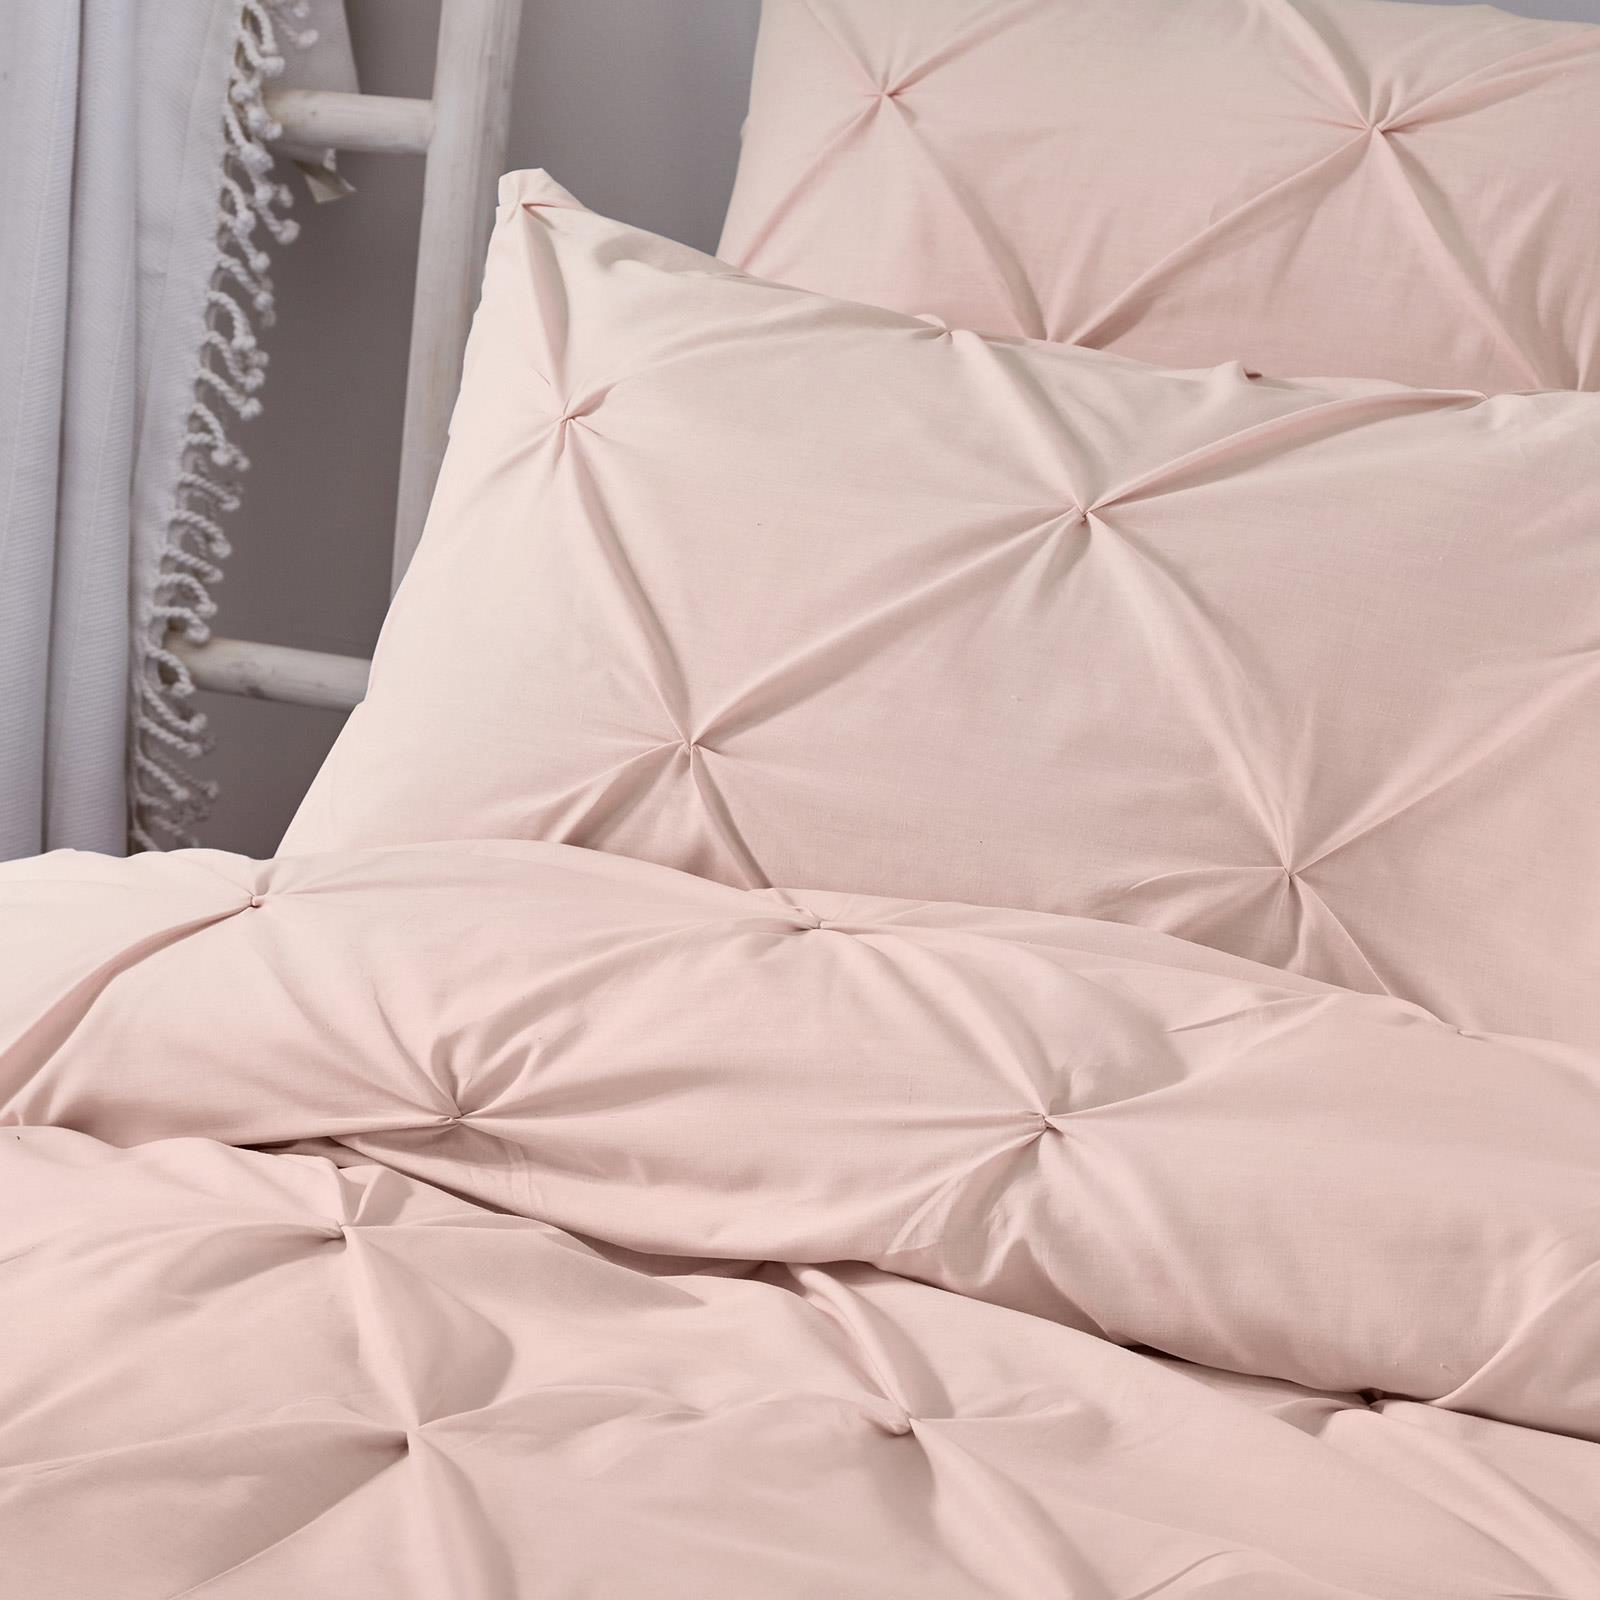 Blush-Duvet-Covers-Ruched-Pin-Tuck-Stitched-Plain-Pink-Quilt-Cover-Bedding-Sets thumbnail 9